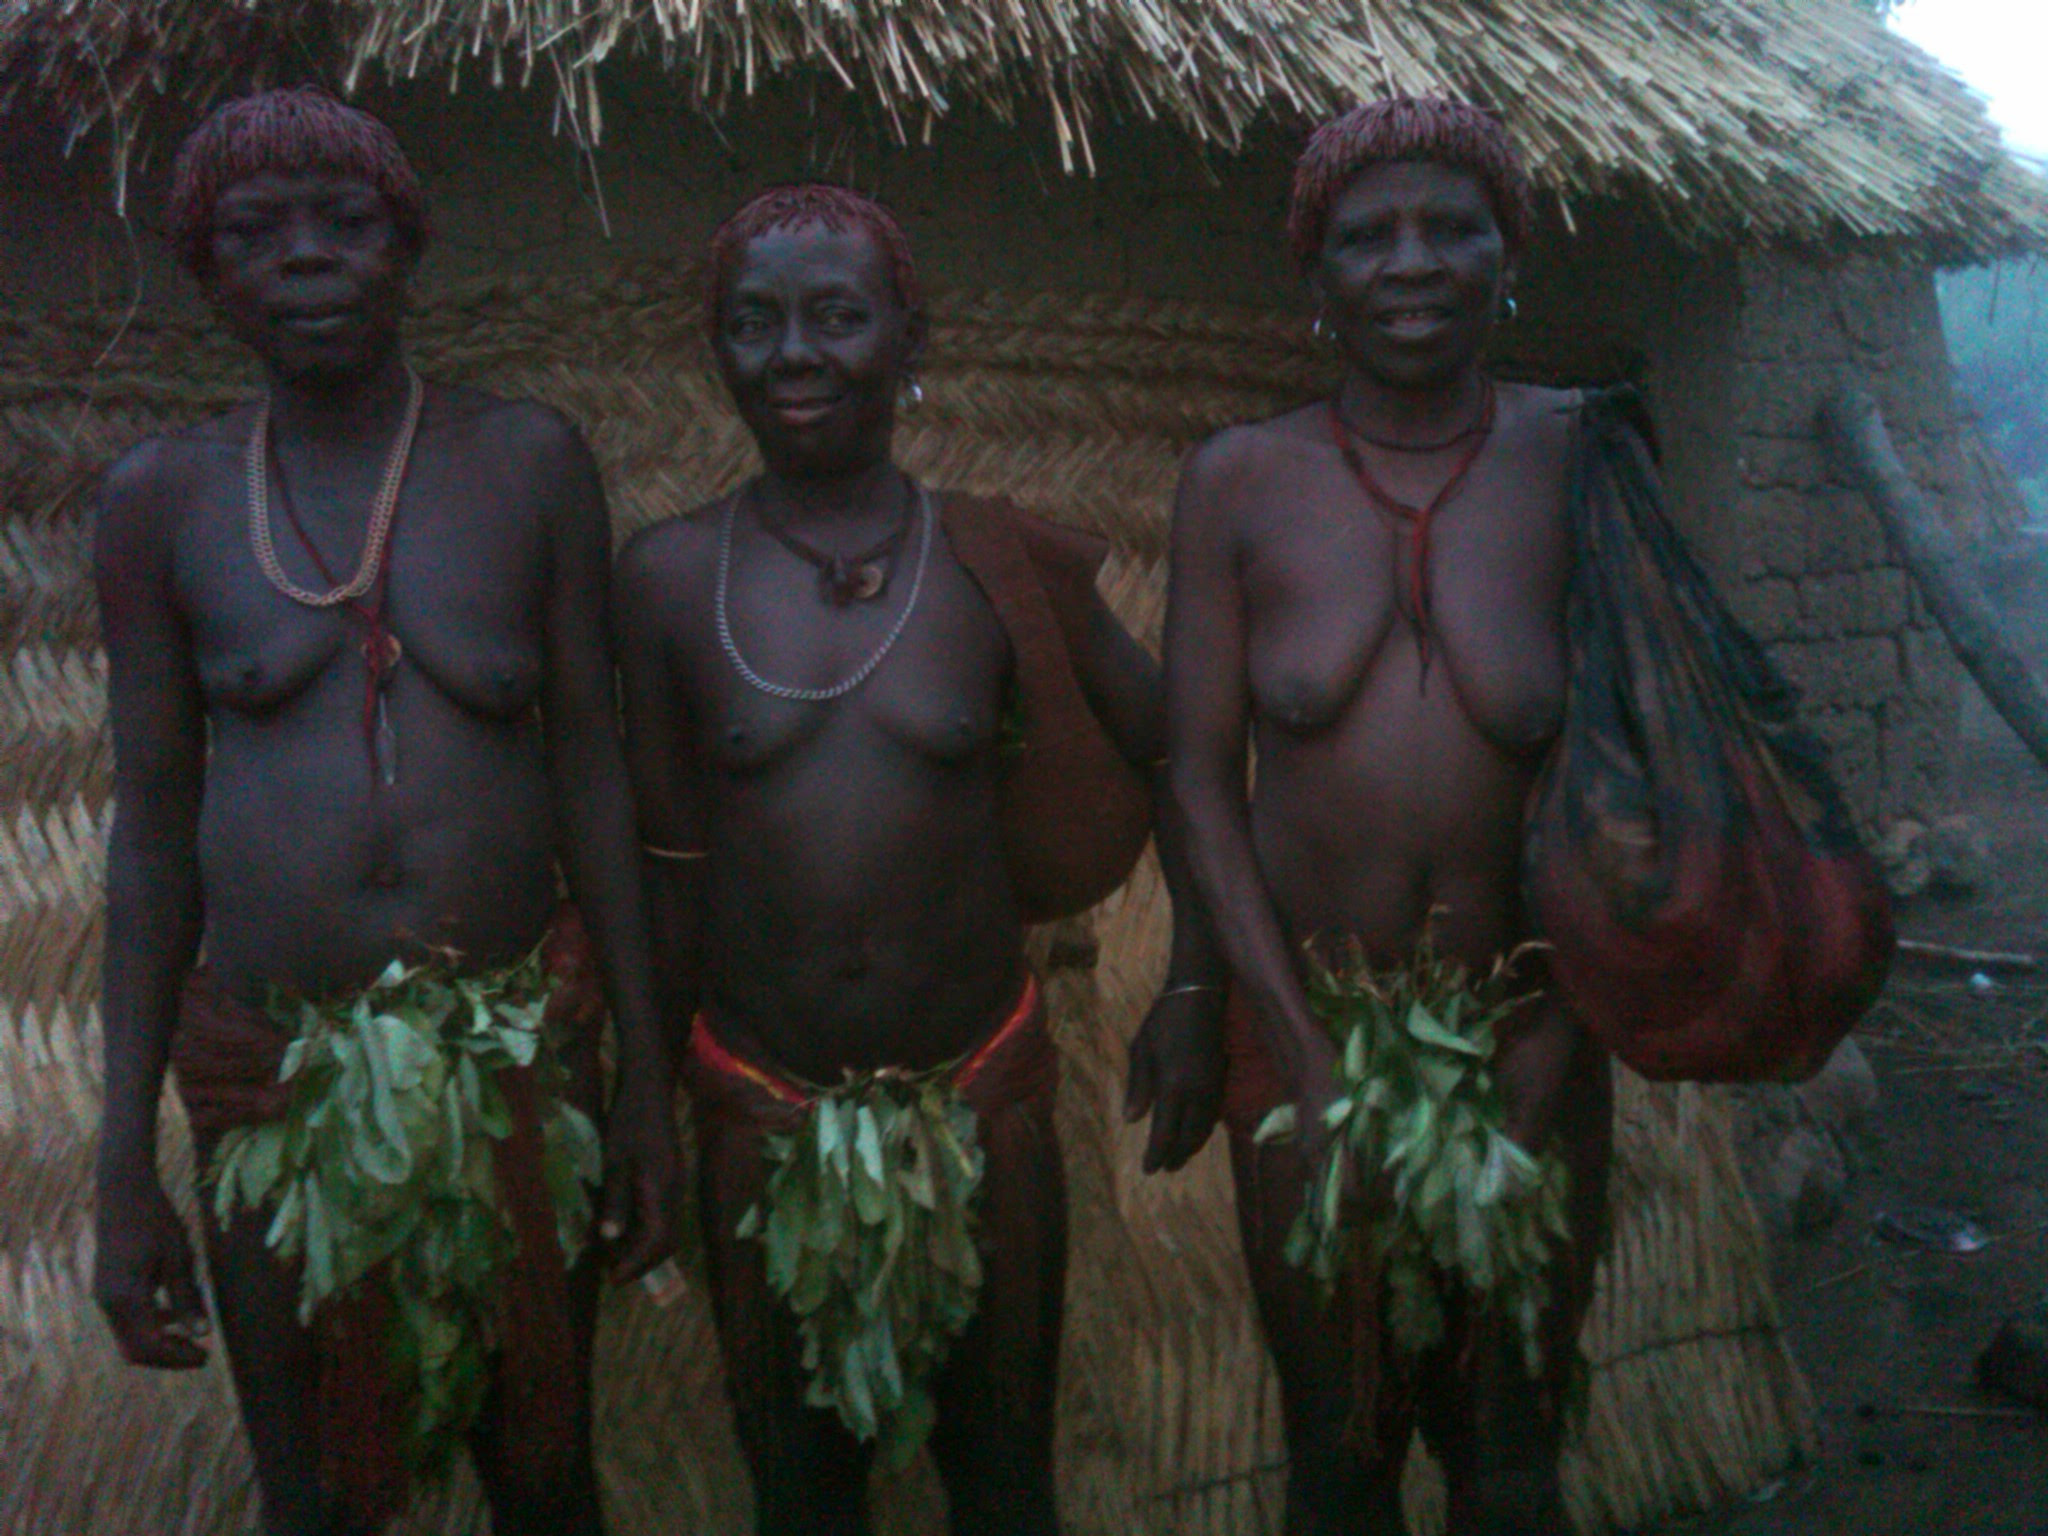 african-villages-nude-photos-download-free-amature-big-pussy-lip-videos